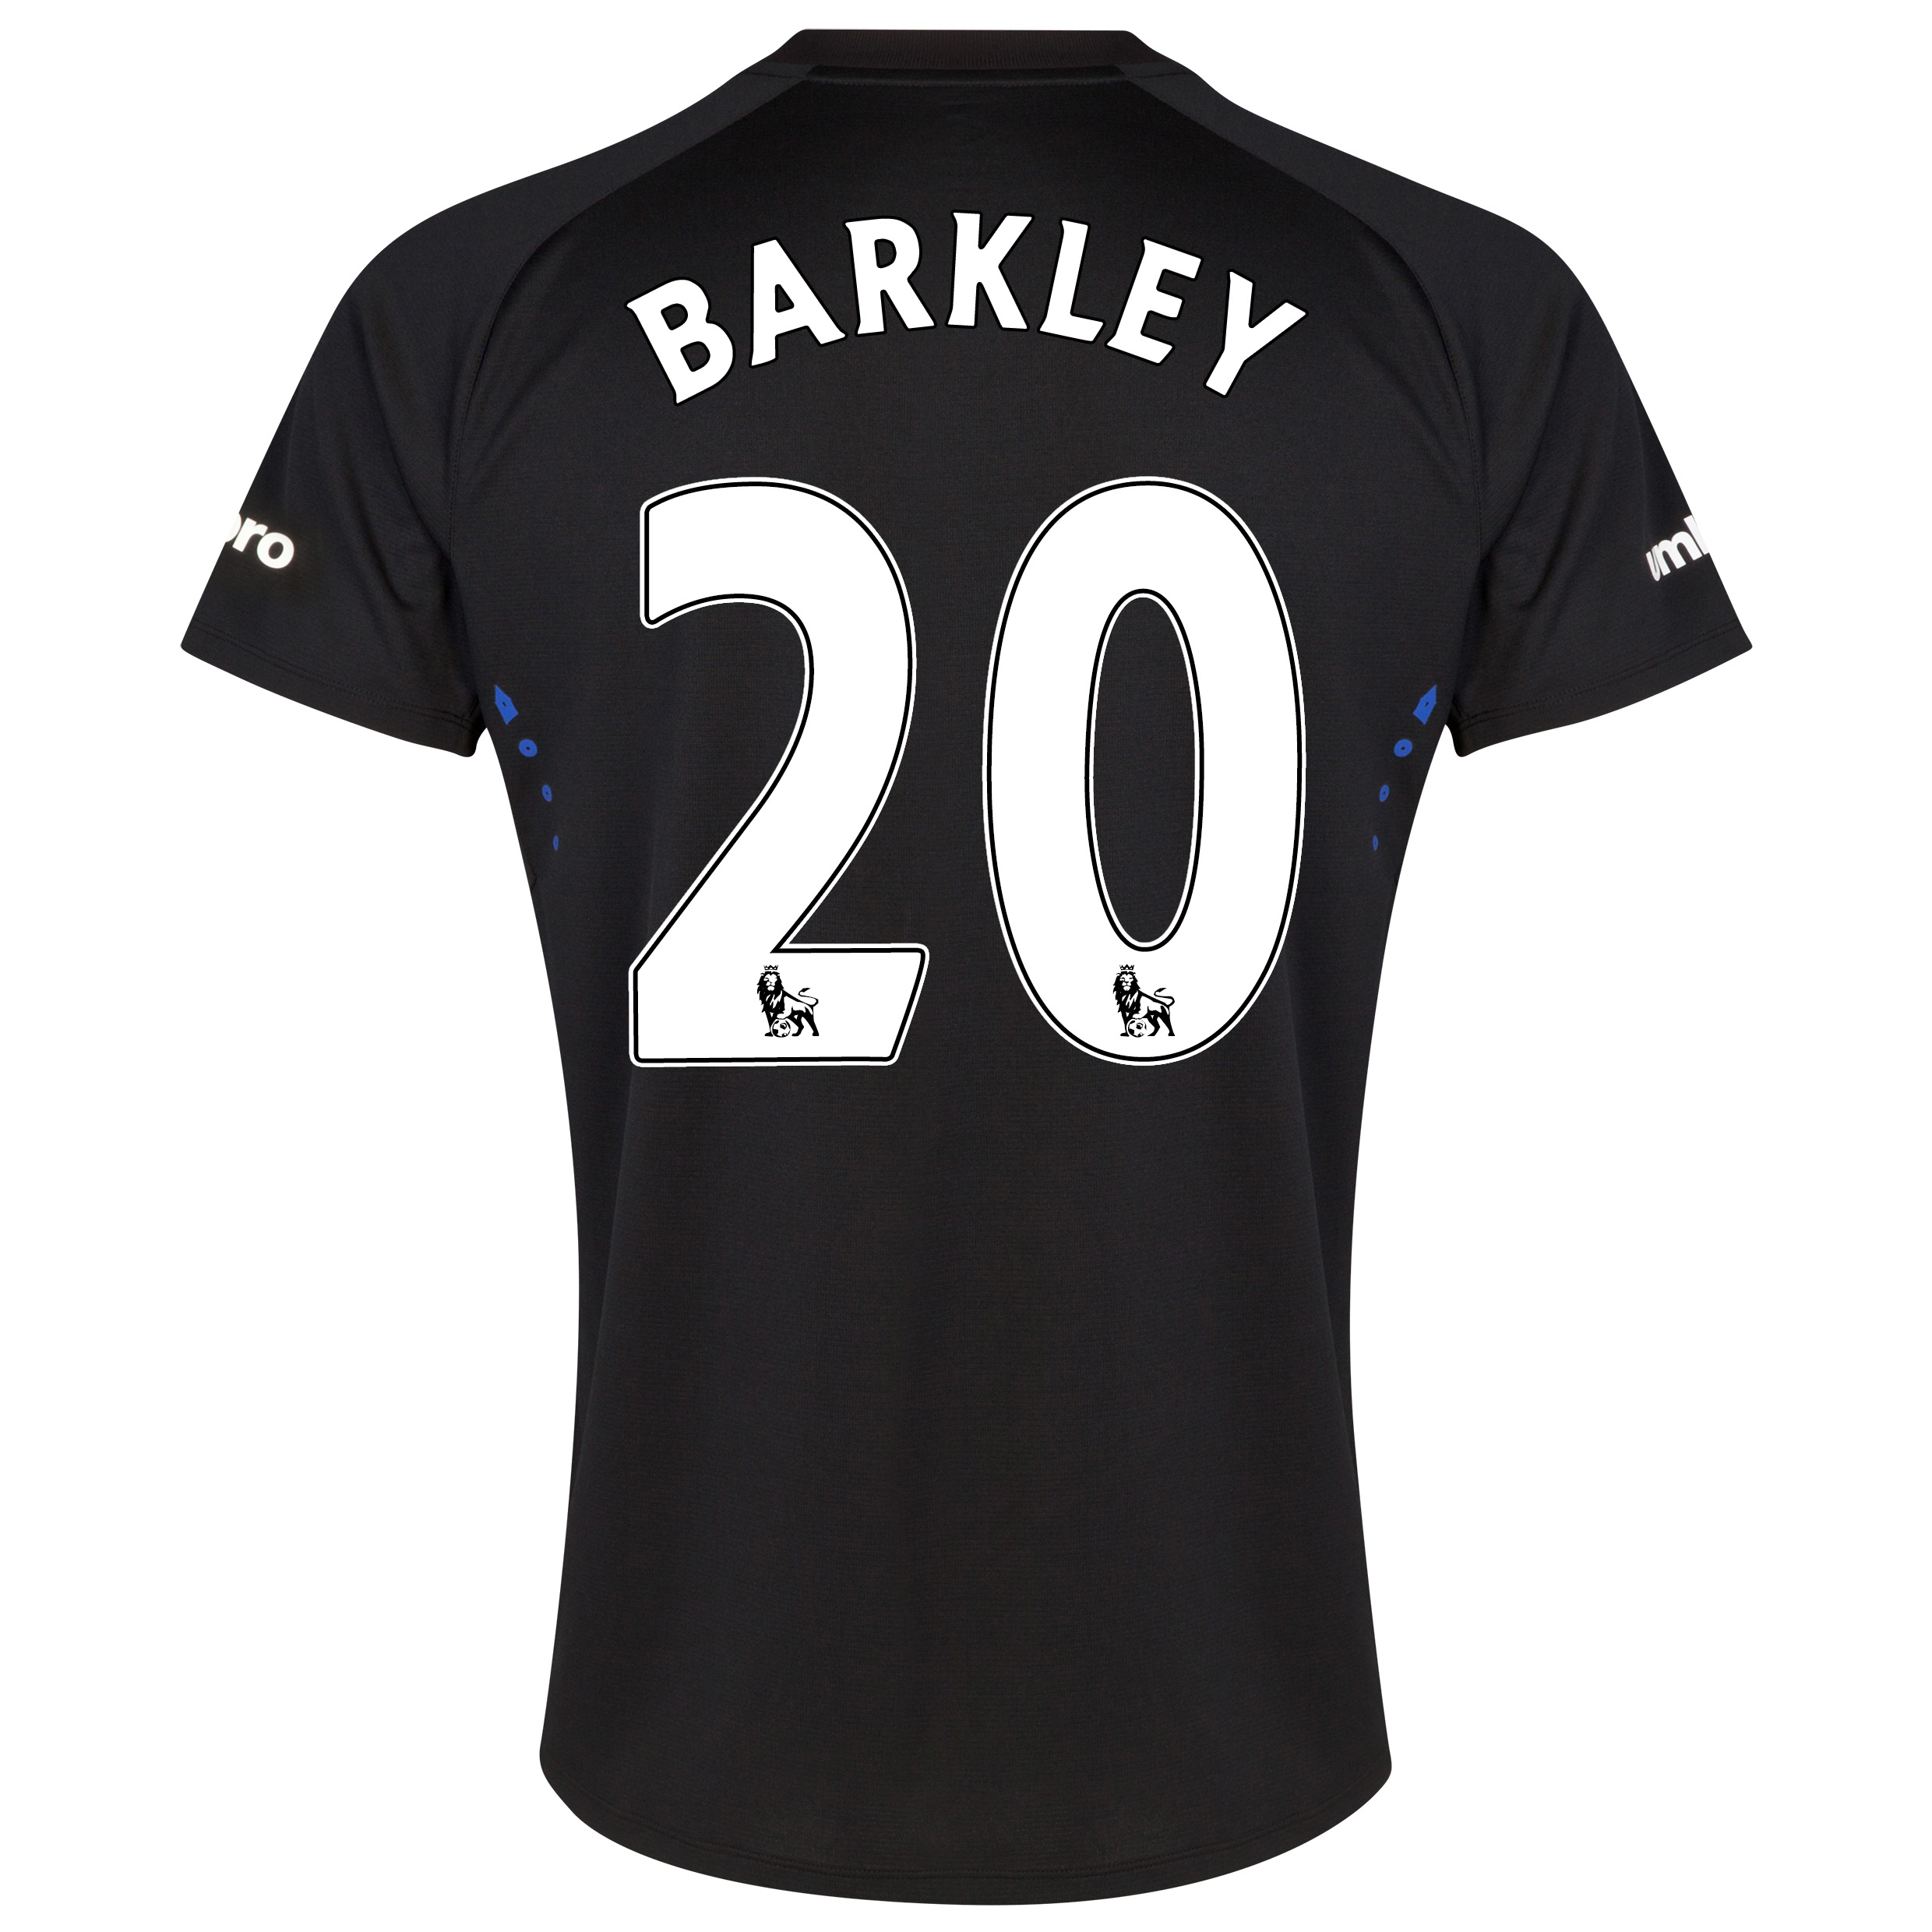 Everton SS Away Shirt 2014/15 with Barkley 20 printing